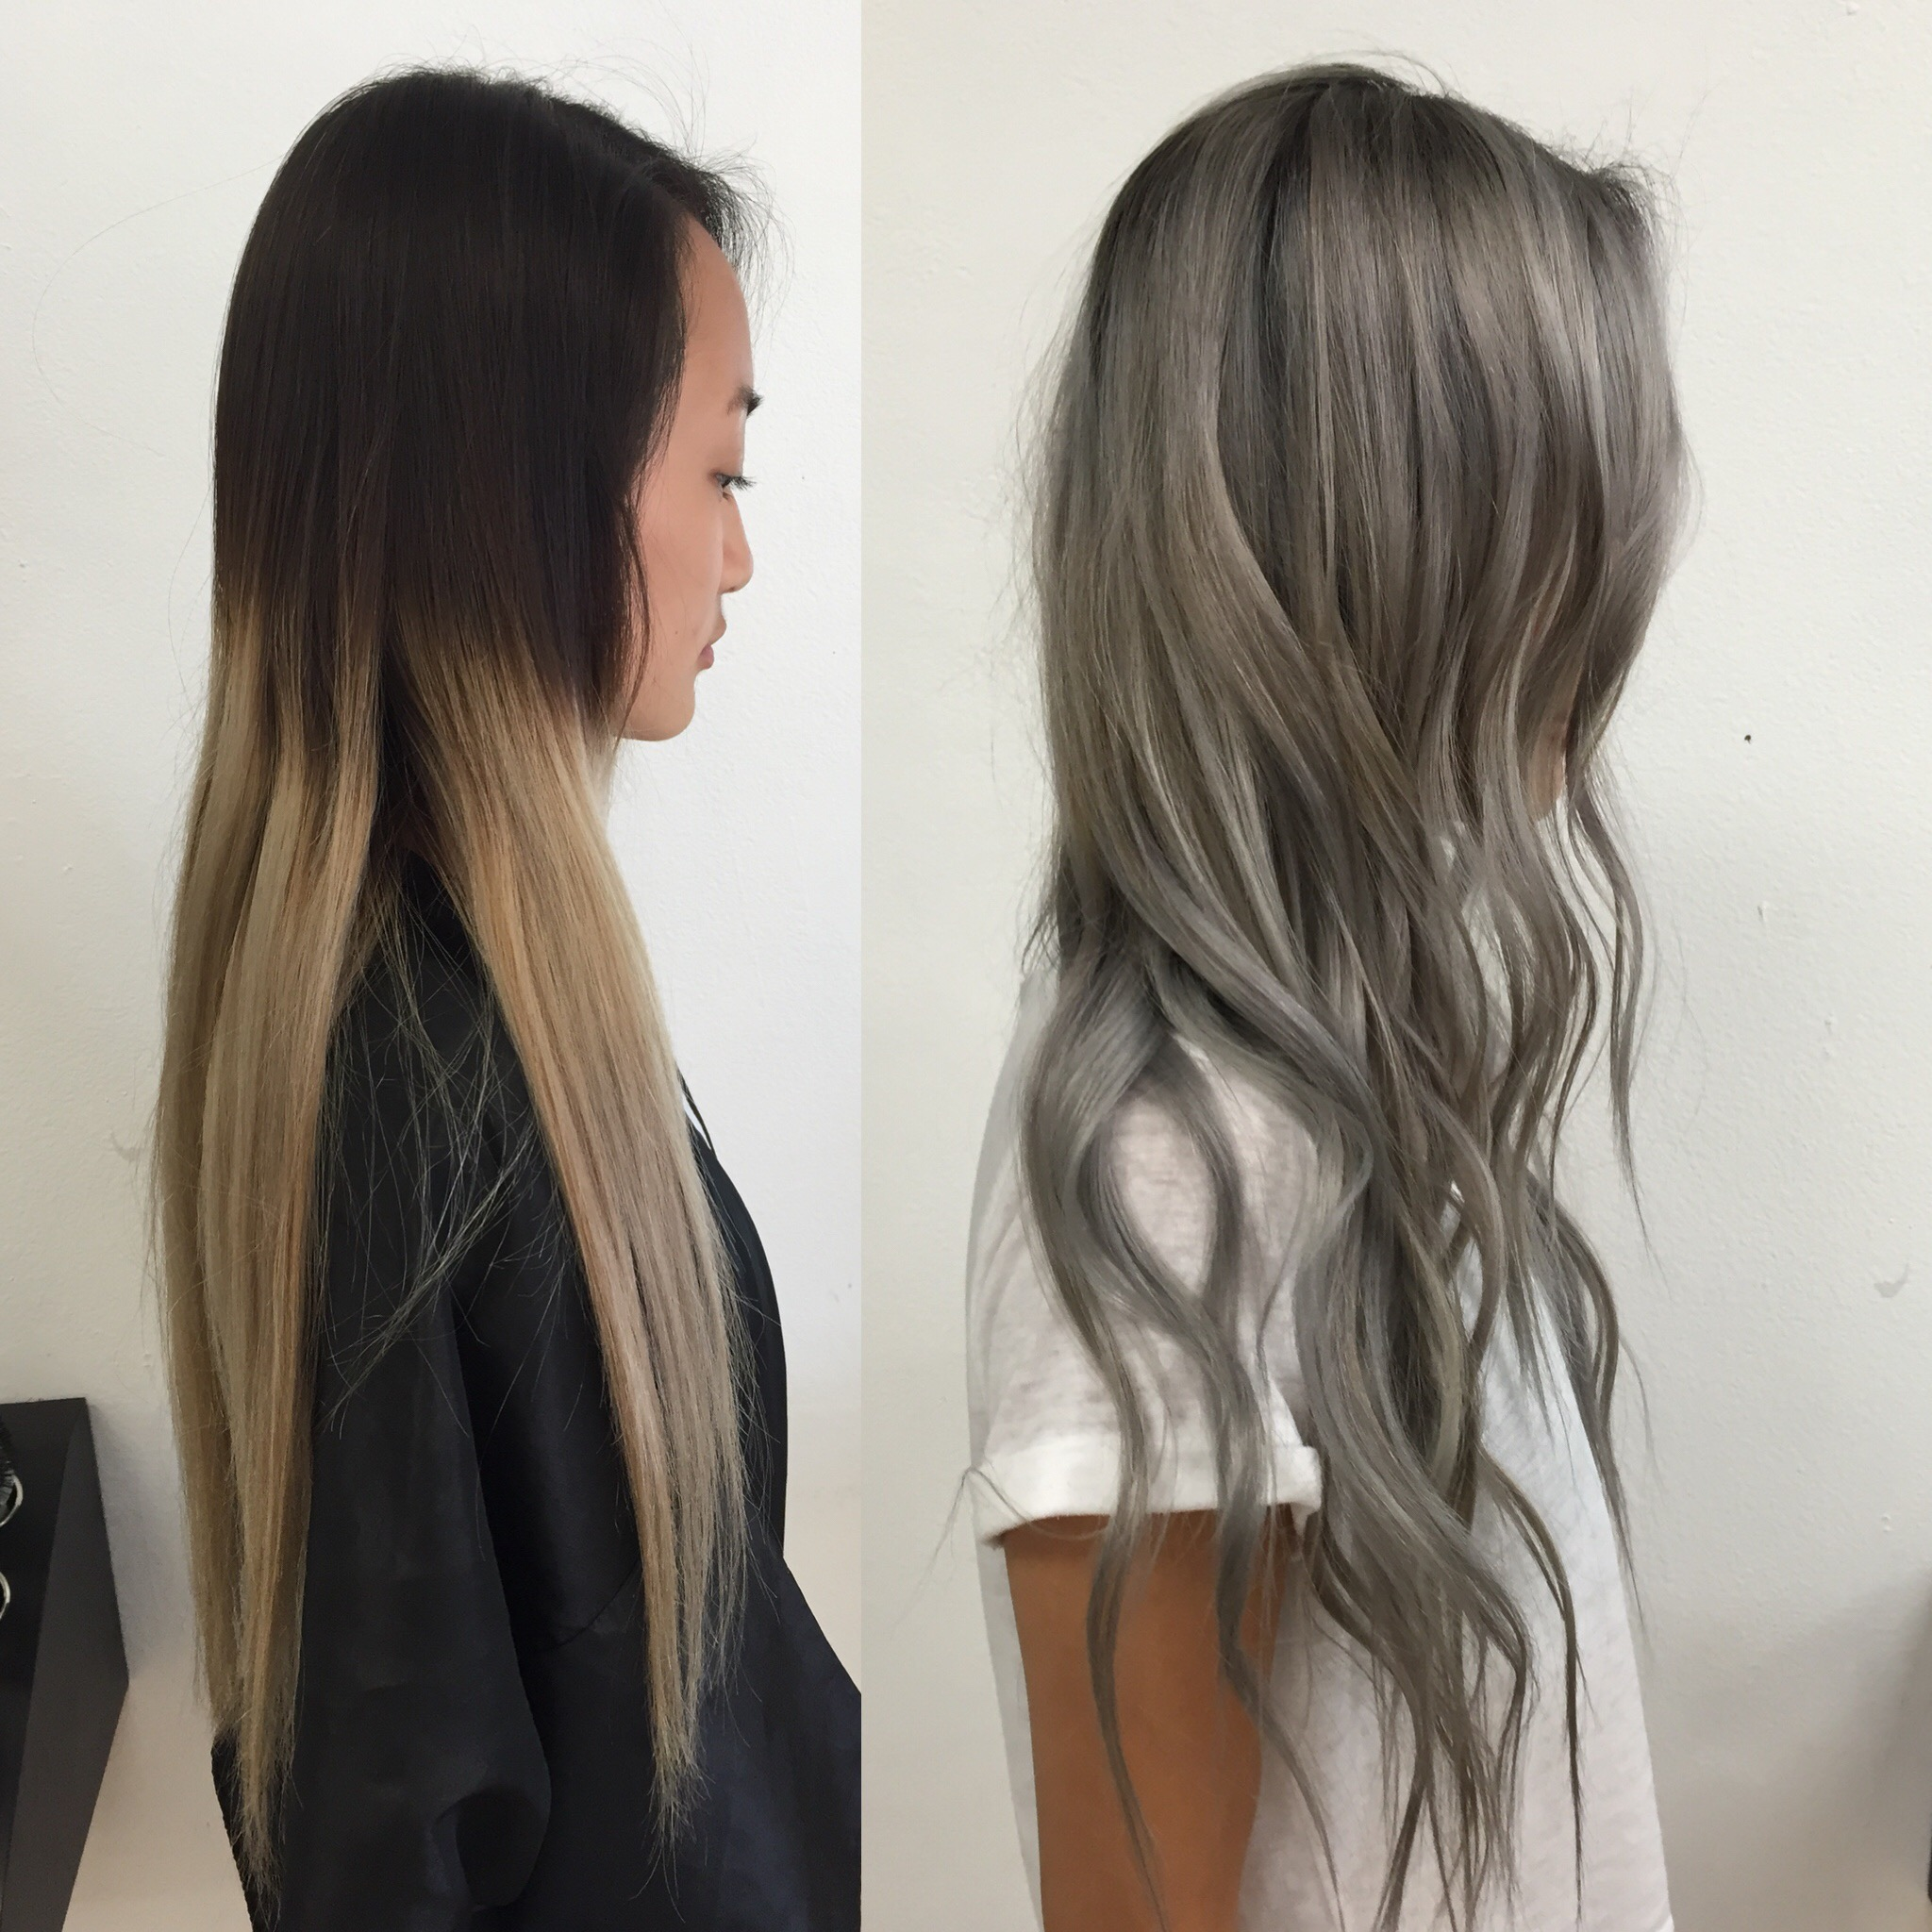 TRANSFORMATION: Old Ombre To Steely Silver